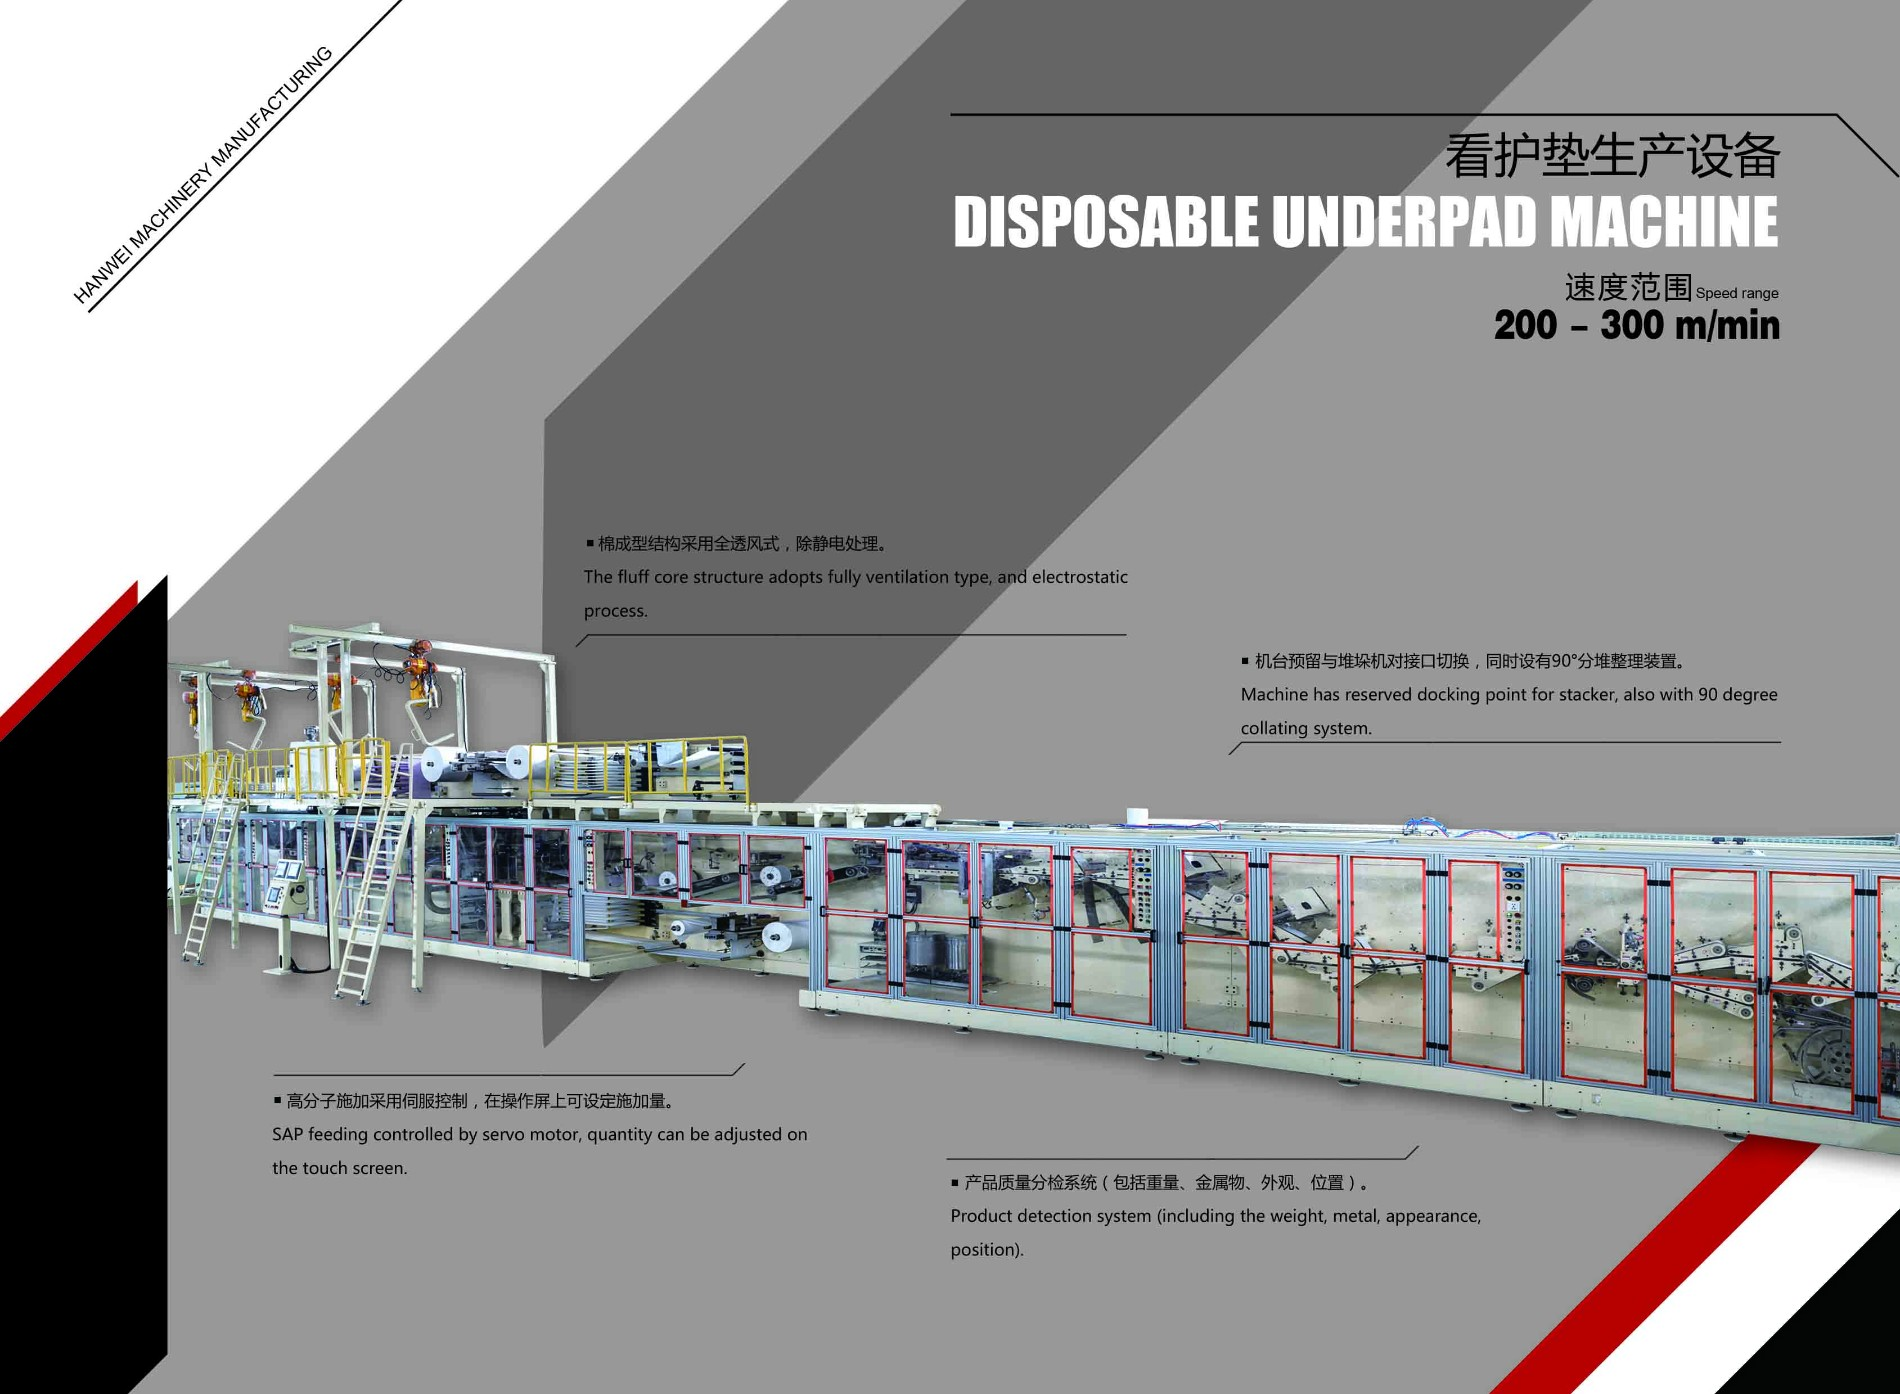 High quality Disposable Underpad Machine Quotes,China Disposable Underpad Machine Factory,Disposable Underpad Machine Purchasing